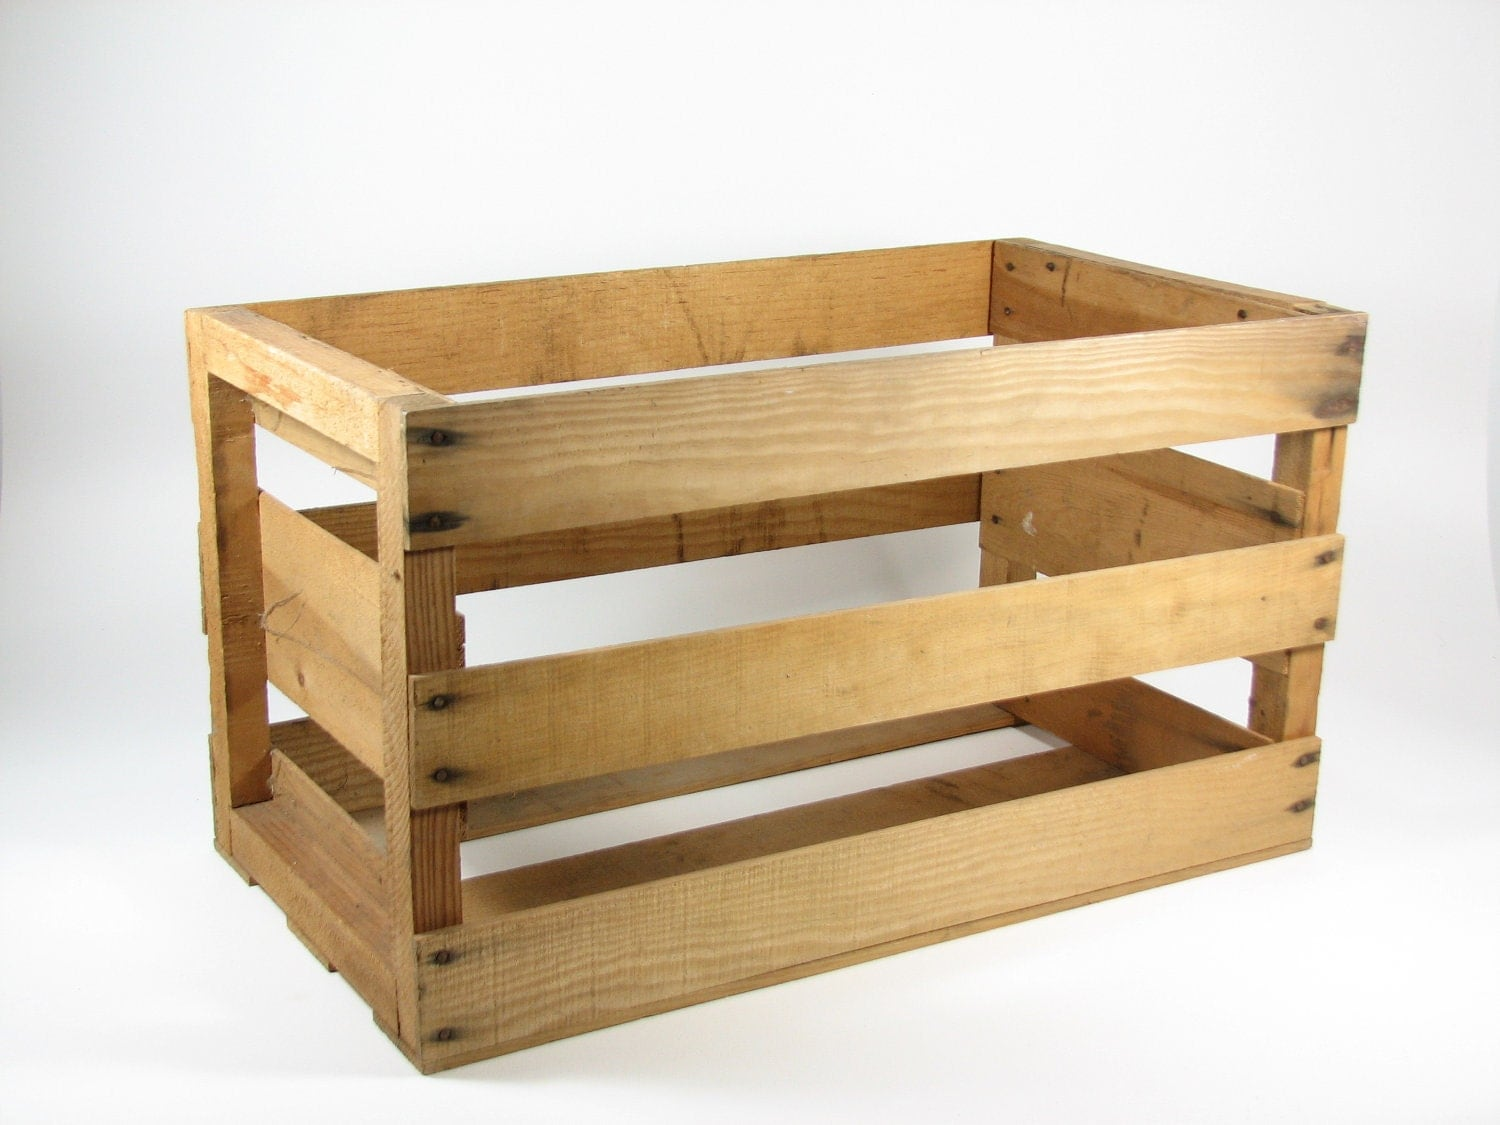 Vintage wood crate wooden box fruit tote by bridgewoodplace for Wooden fruit crates